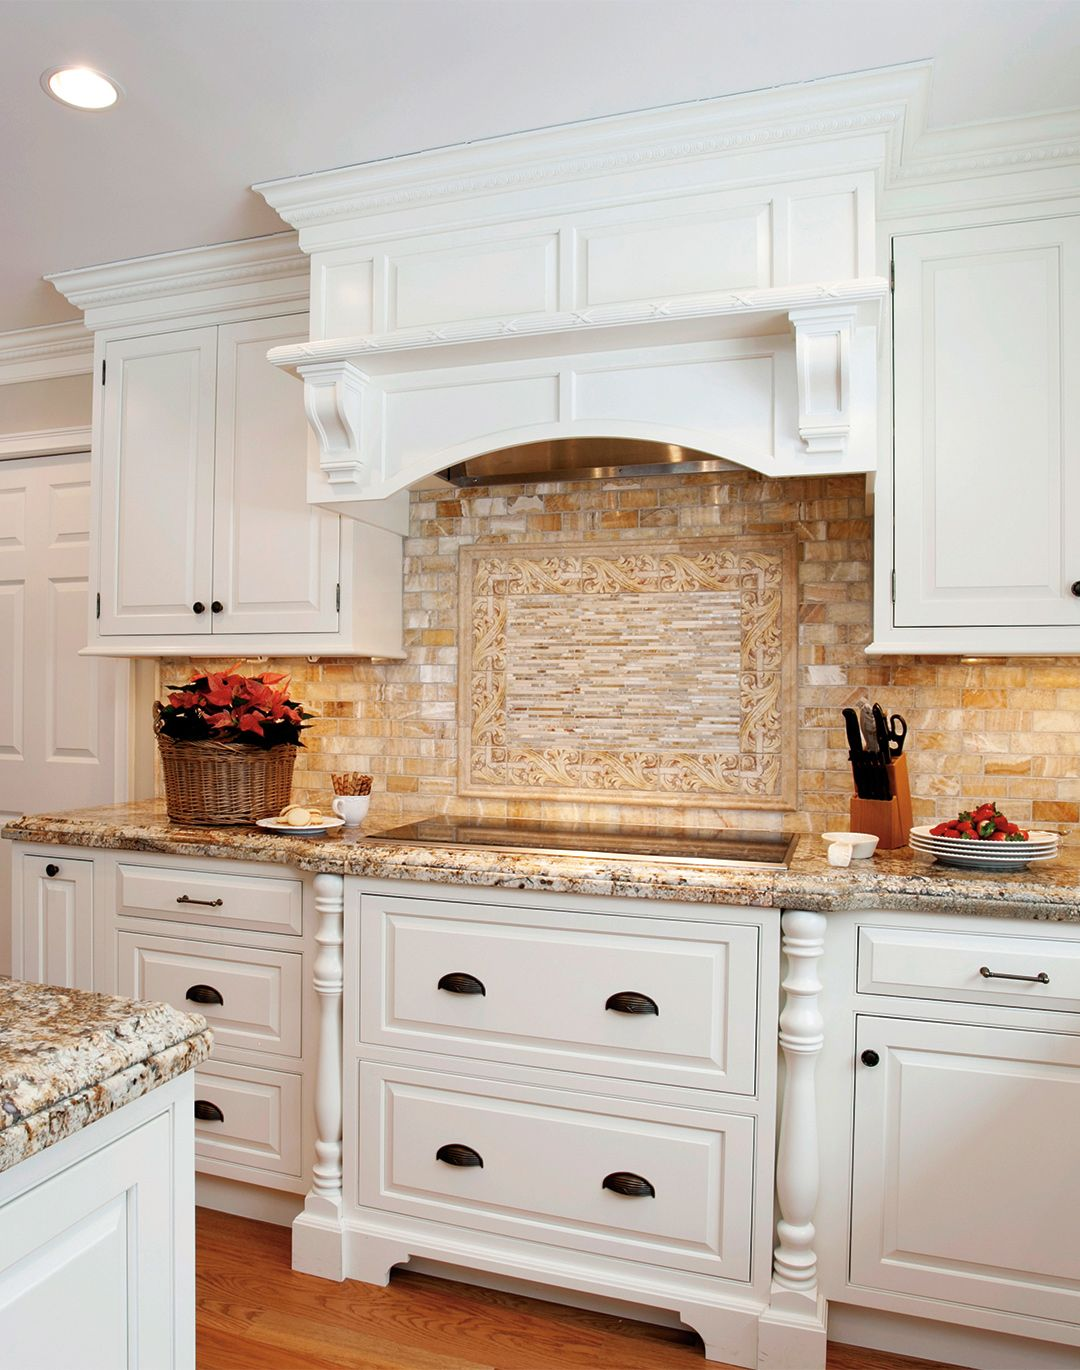 Pin On Island And Cabinet Combos